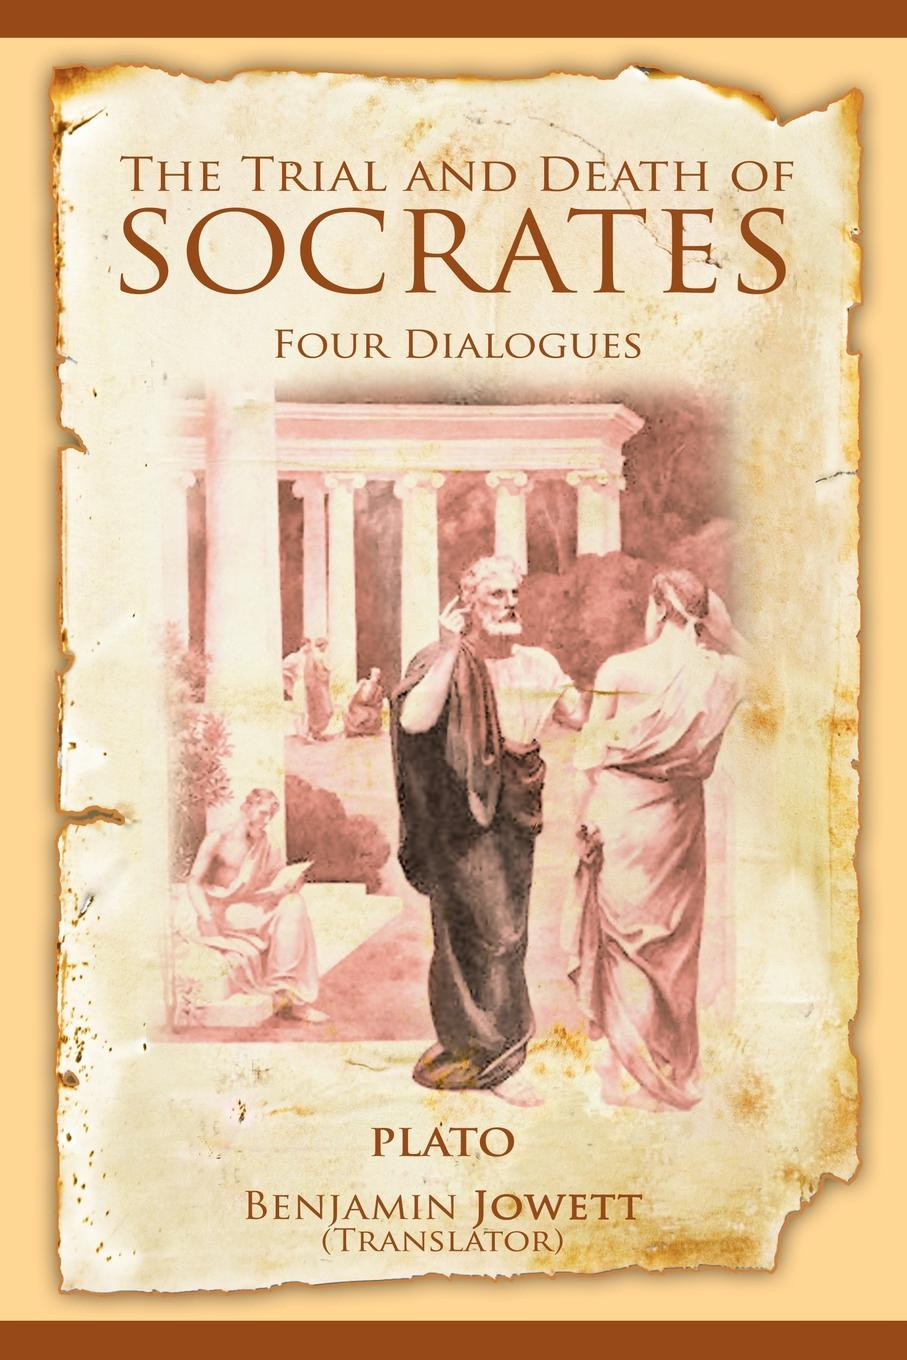 Plato, Benjamin Jowett The Trial and Death of Socrates. Four Dialogues xenophon the memorable thoughts of socrates